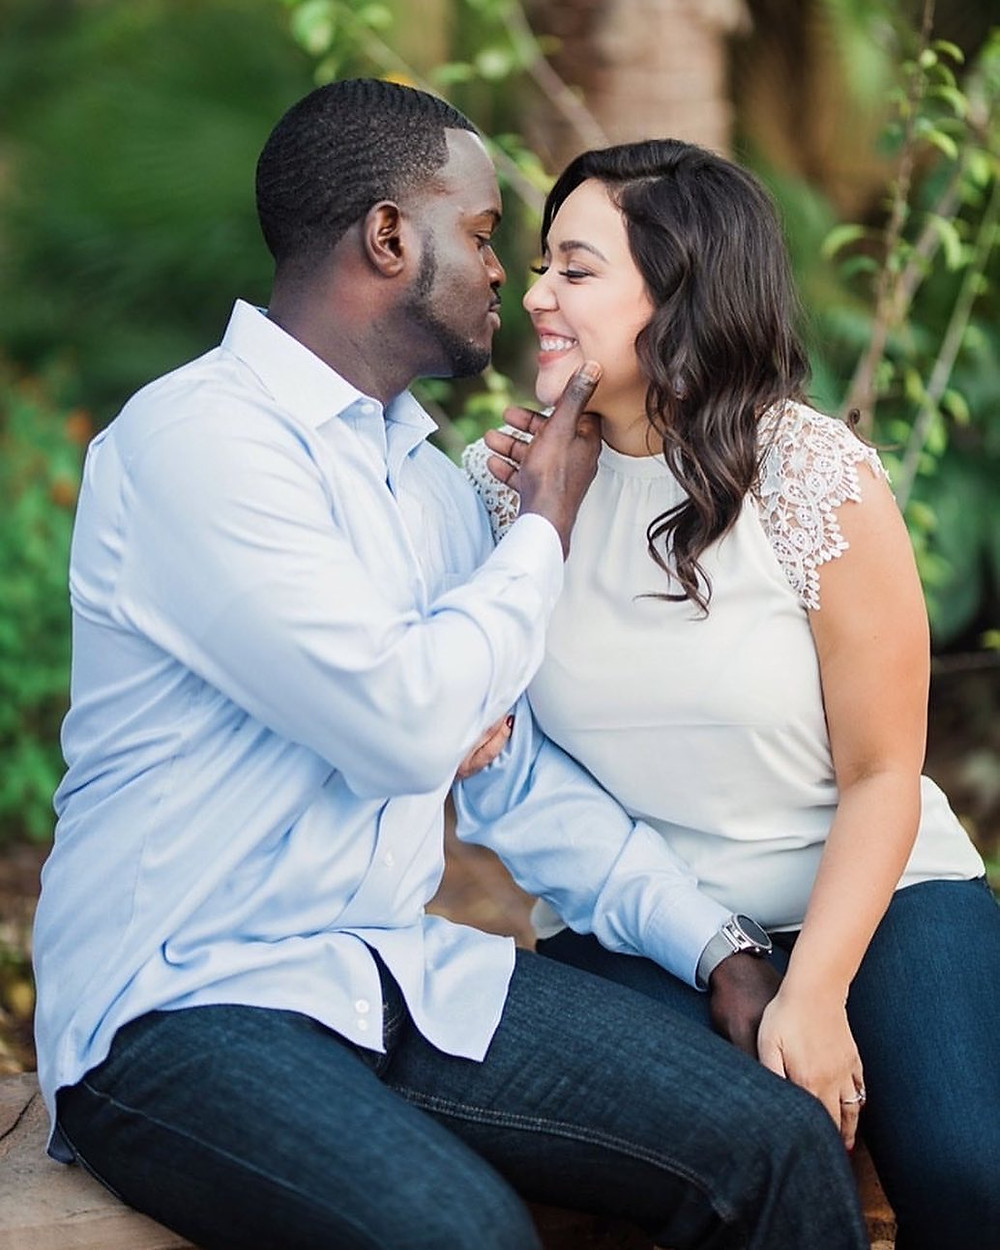 Black man and hispanic woman smiling and holding each other while sitting on a bench under trees